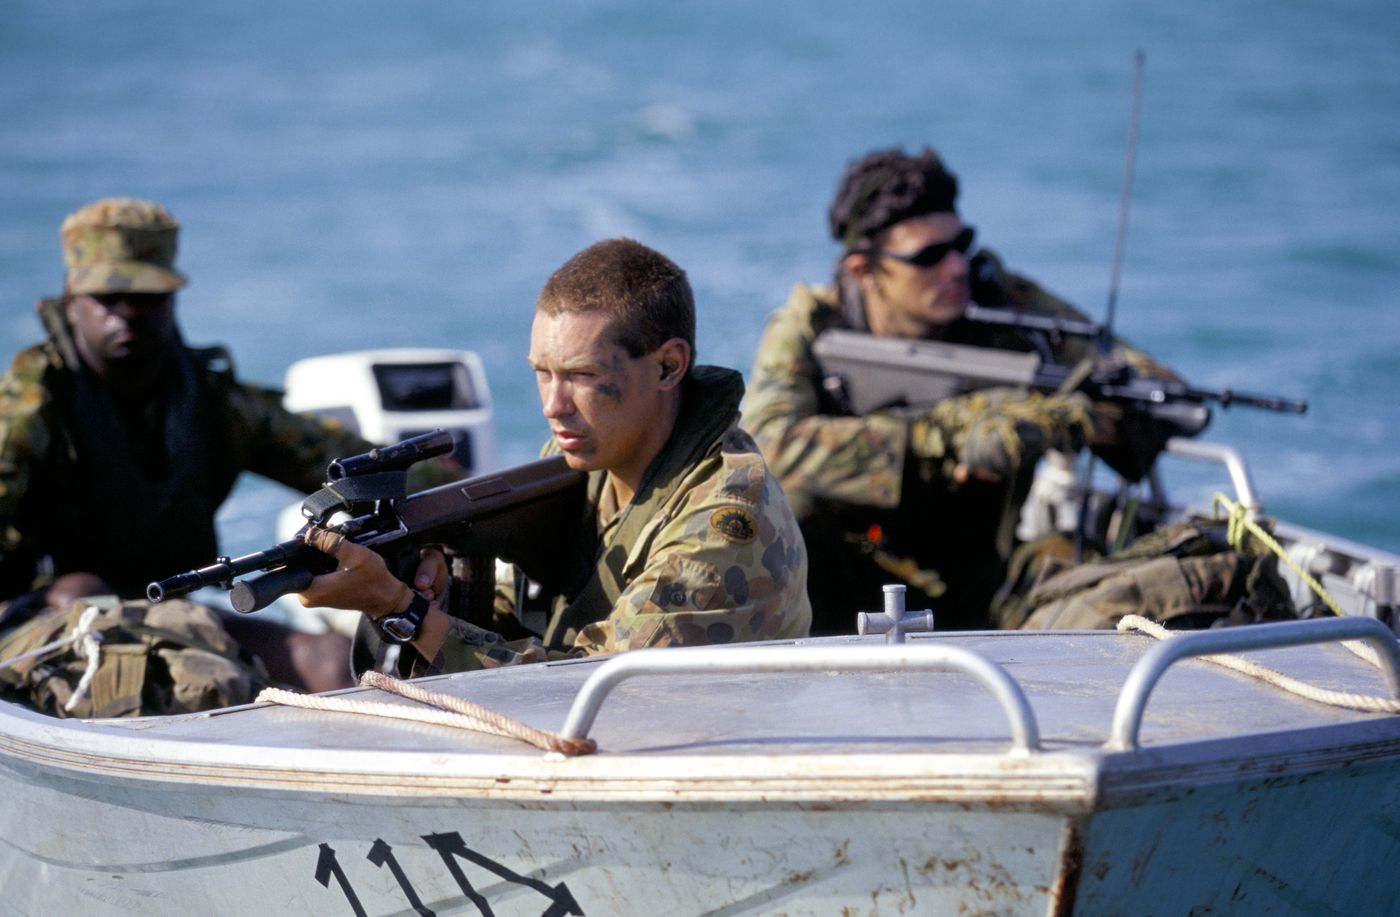 IMMIGRATION PATROL AUSTRALIA ARMED SPECIAL FORCES ON THEIR WAY TO CAPE YORK FOR A ROUTINE IMMIGRATION PATROL 1999